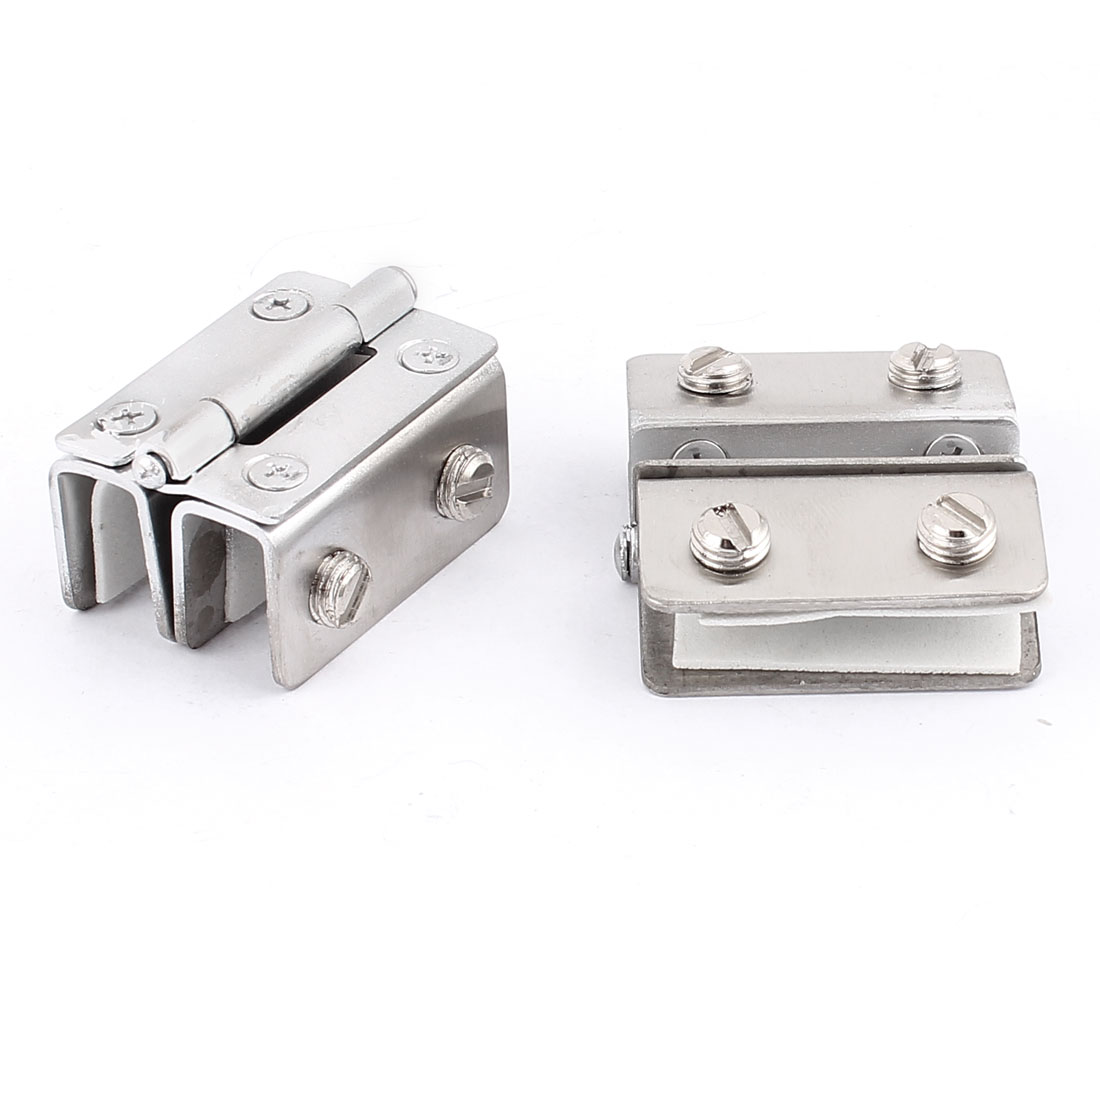 2pcs Metal Wall Mounted Clamp Clip Door Hinge Catch for 8mm-10mm Thickness Glass